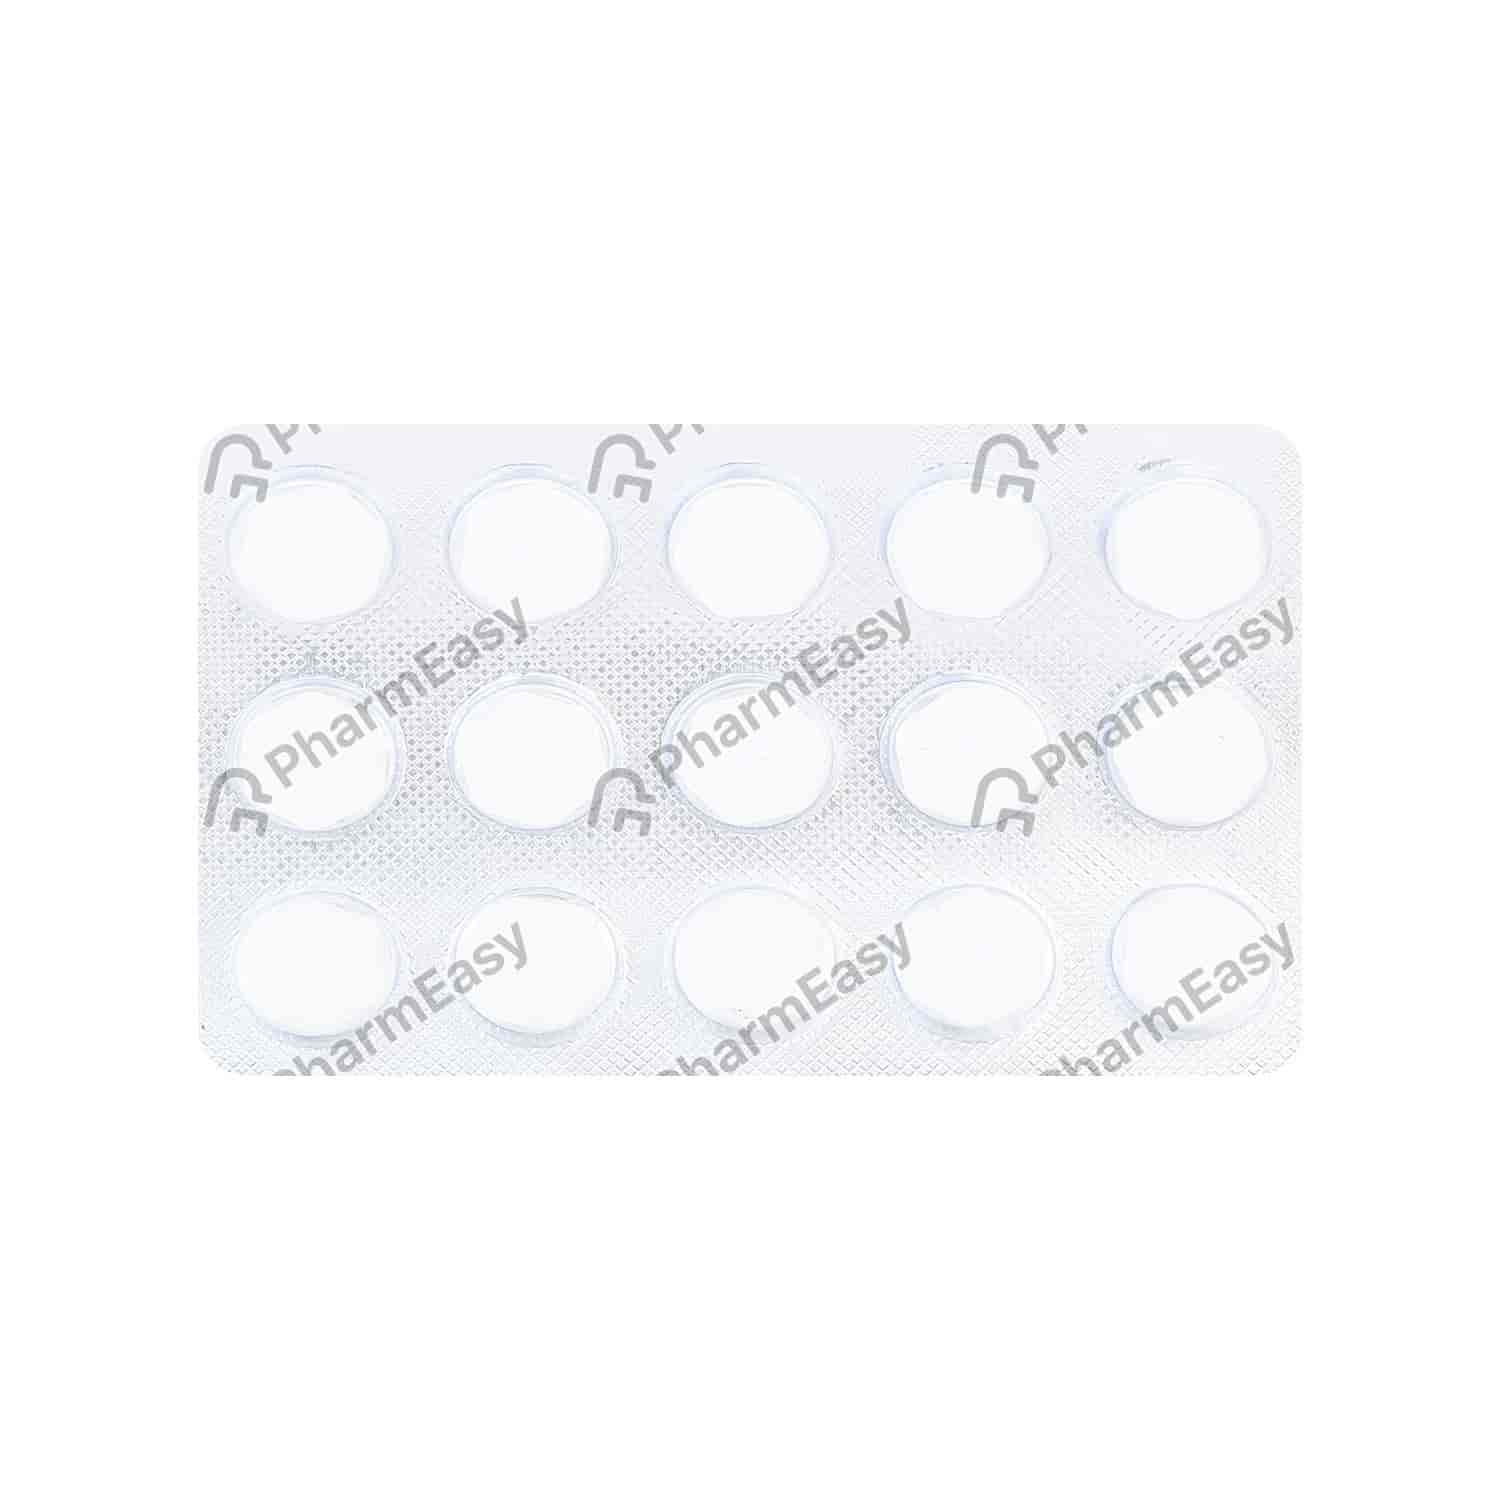 Arden 500mg Strip Of 15 Tablets